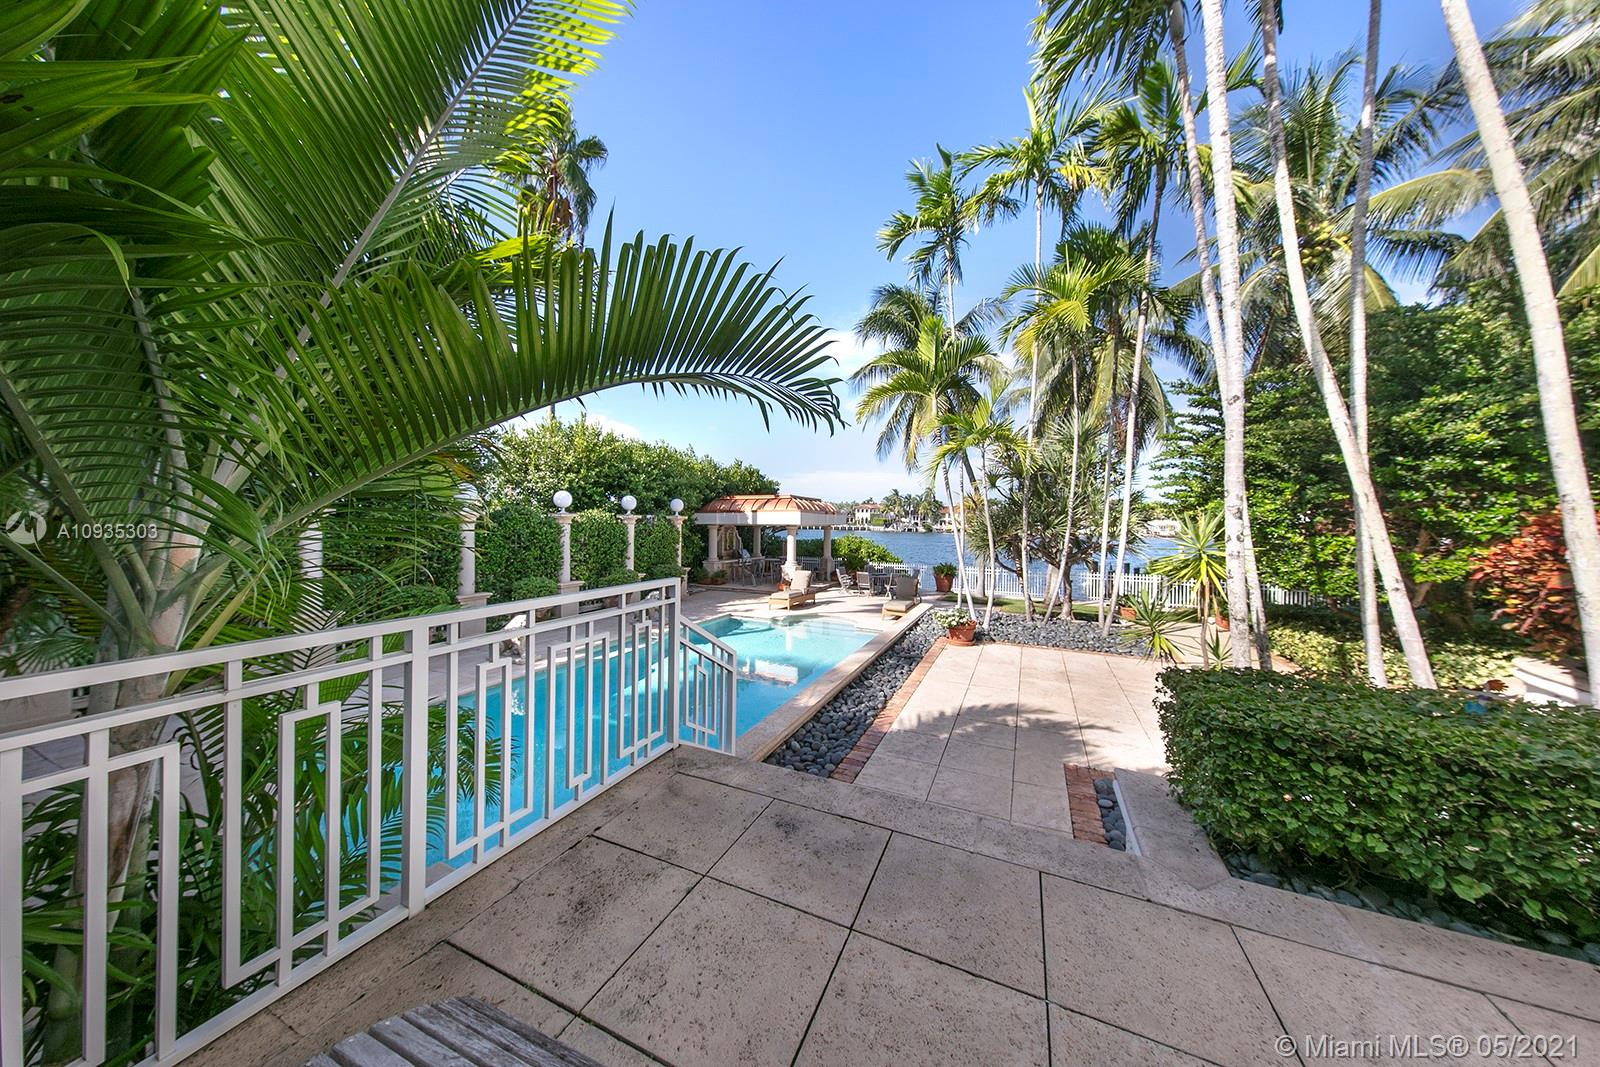 Live in paradise in this mediterranean-inspired waterfront estate located in exclusive community on Palm Island! Architecturally designed w/ large windows providing natural lighting, this 5 BD/4.2 BA home has open floor plan w/ spacious indoor living & covered outdoor living areas, surrounded by beautiful lush landscaping. 100FT of water frontage. Features include a dramatic foyer w/ soaring high ceilings, a grand living room w/ fireplace & 1800's chandeliers, dining & breakfast spaces, unique cow-bone kitchen cabinets imported from Colombia, Oak Wood floors, an African Rosewood Media Room, a corner office, a bar w/ built-in aquarium, a master suite w/ 2 balconies, & more! Enjoy stunning views from a comfortable terrace, relax inside pool surrounded by lion-shaped fountains, & private dock